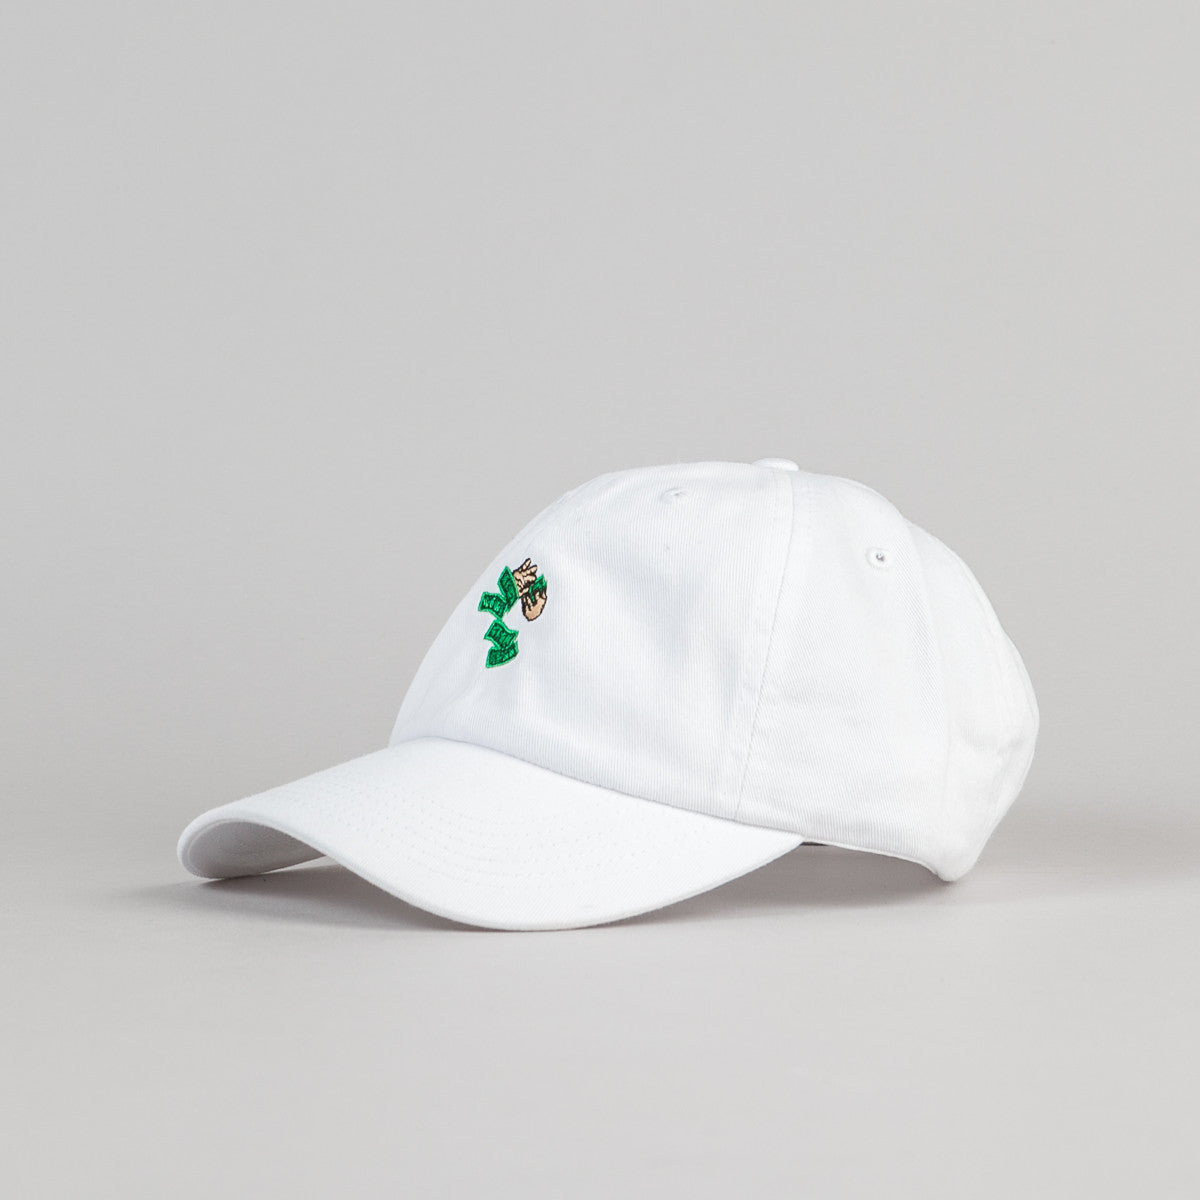 40s & Shorties Make It Rain Cap - White